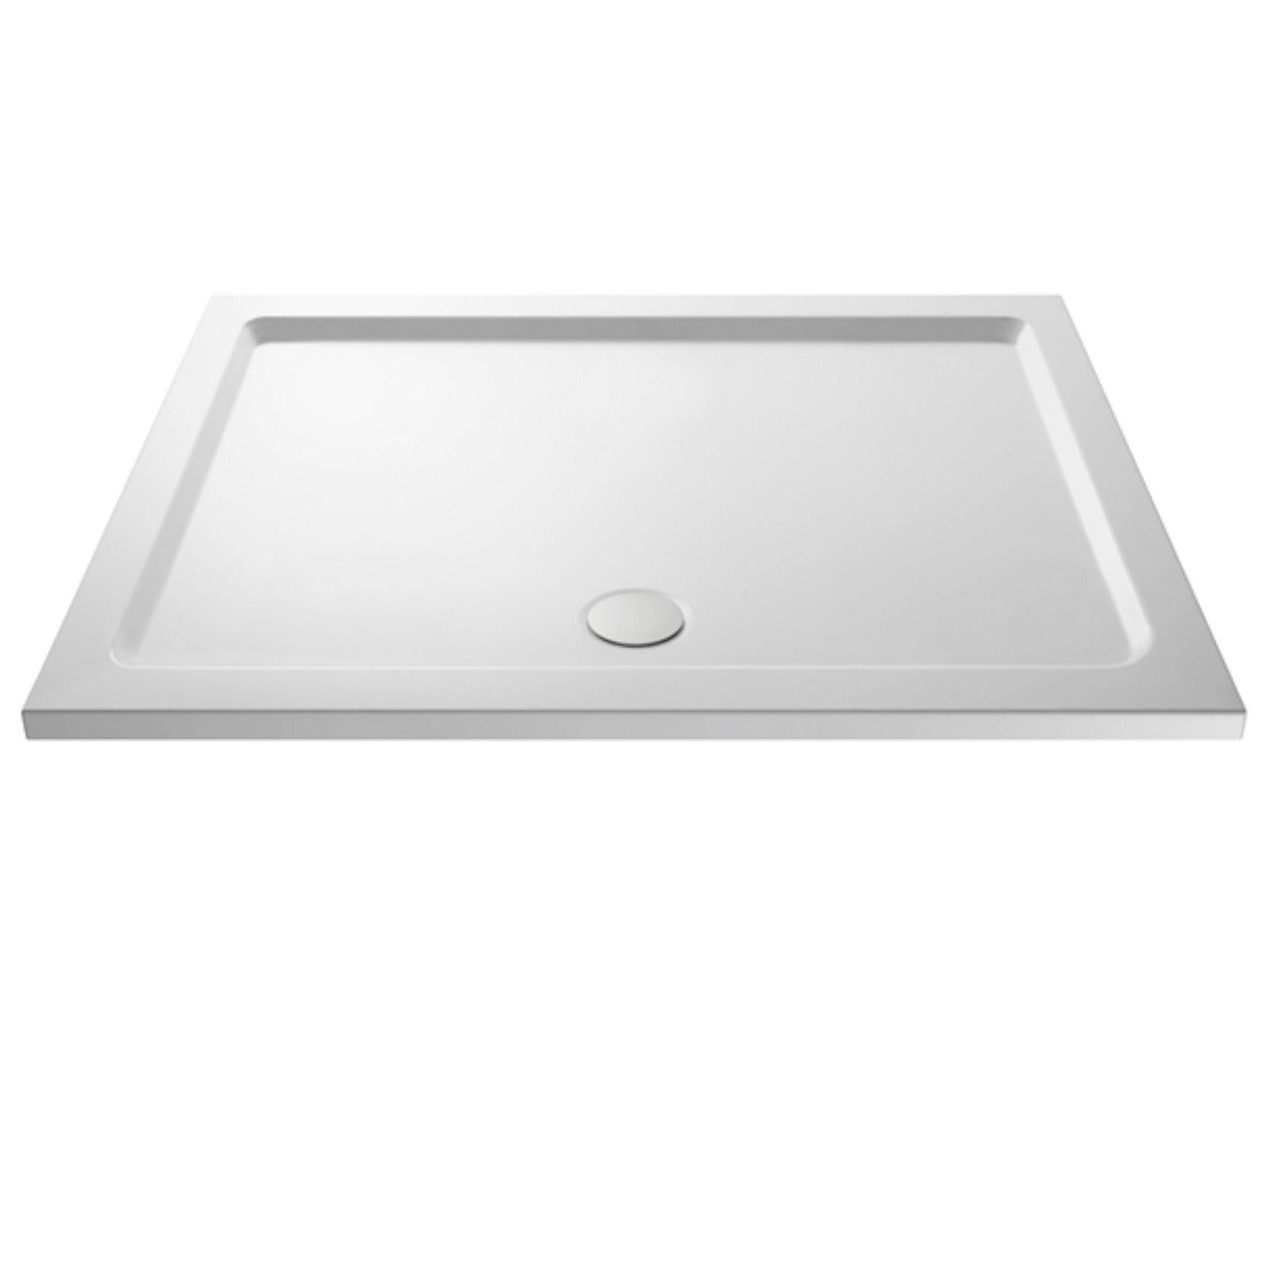 Premier White Rectangular Shower Tray 1700mm x 900mm - NTP064